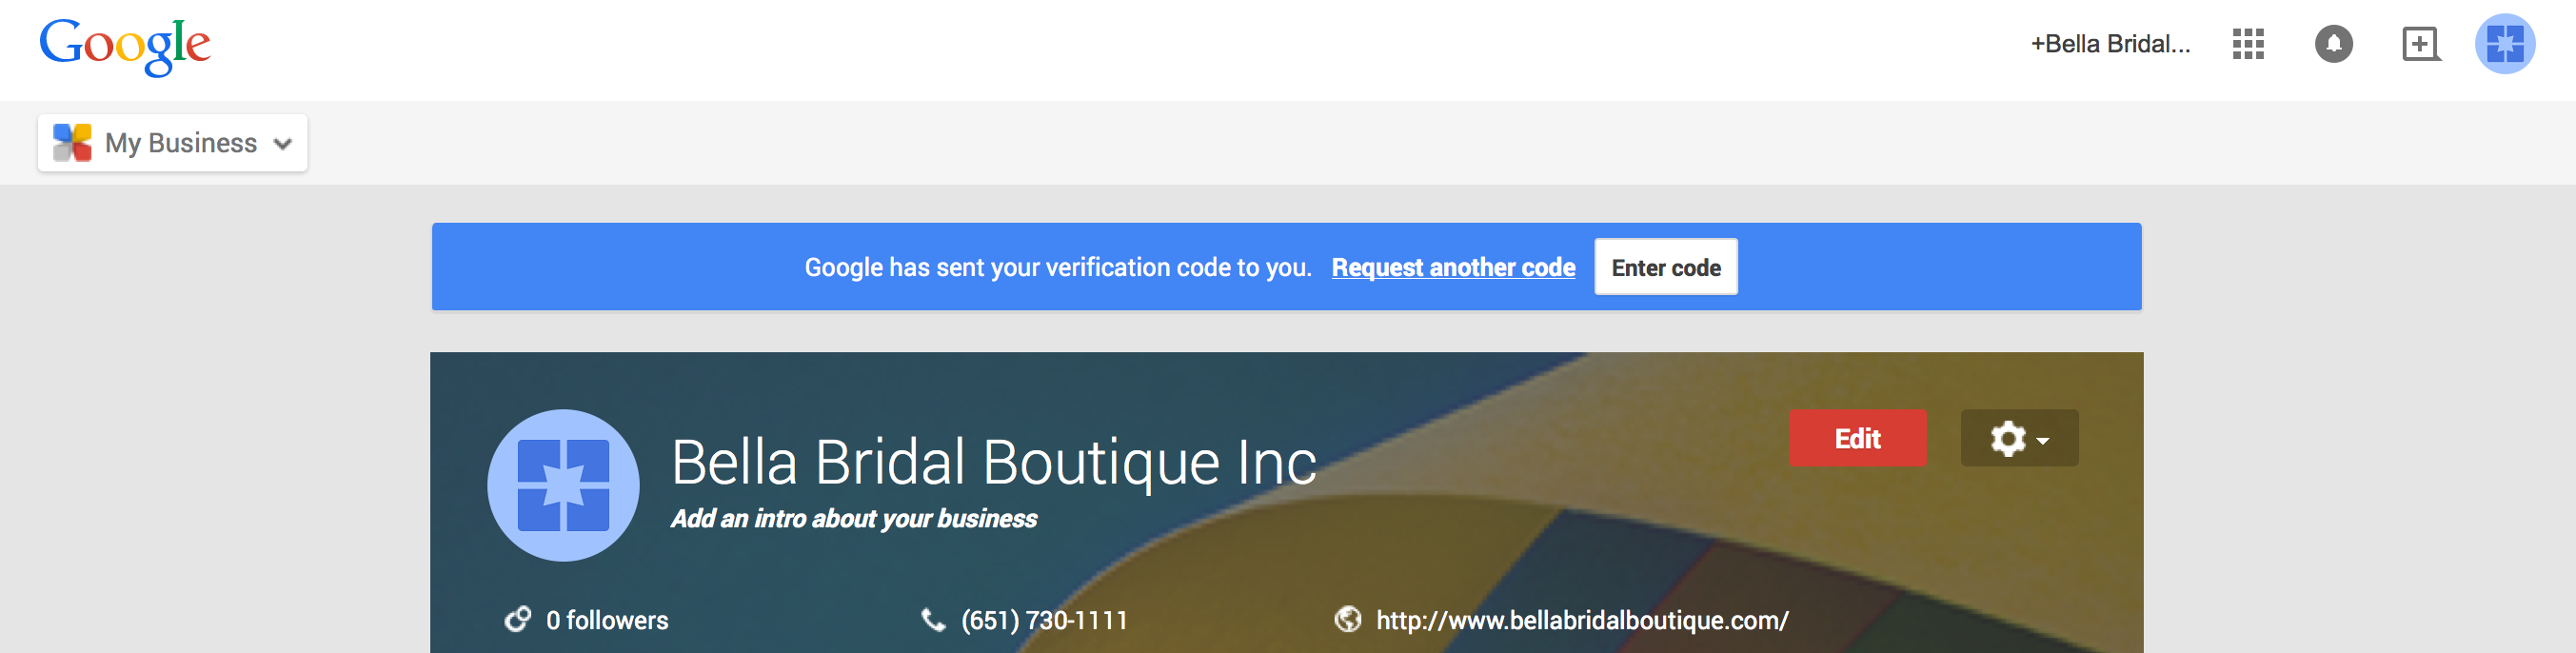 Add code to google plus page